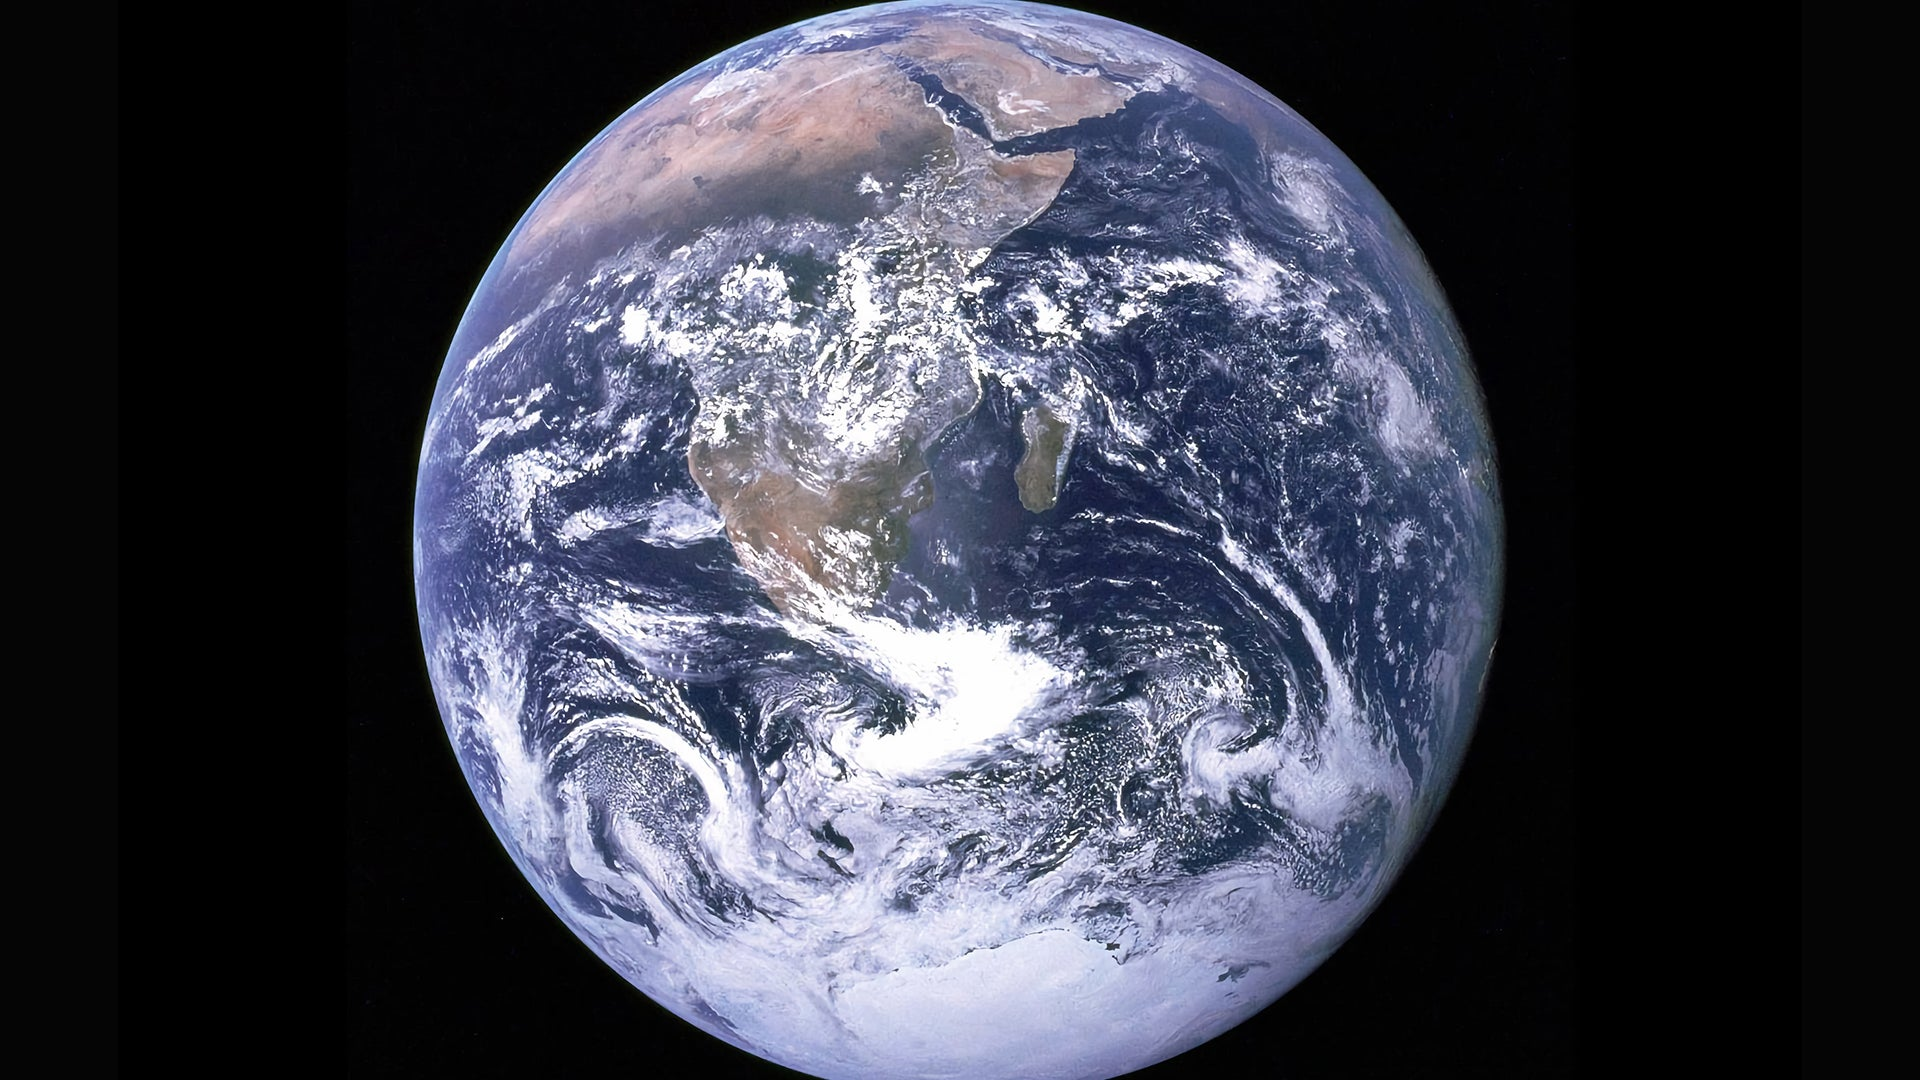 A picture of the Earth, taken from space